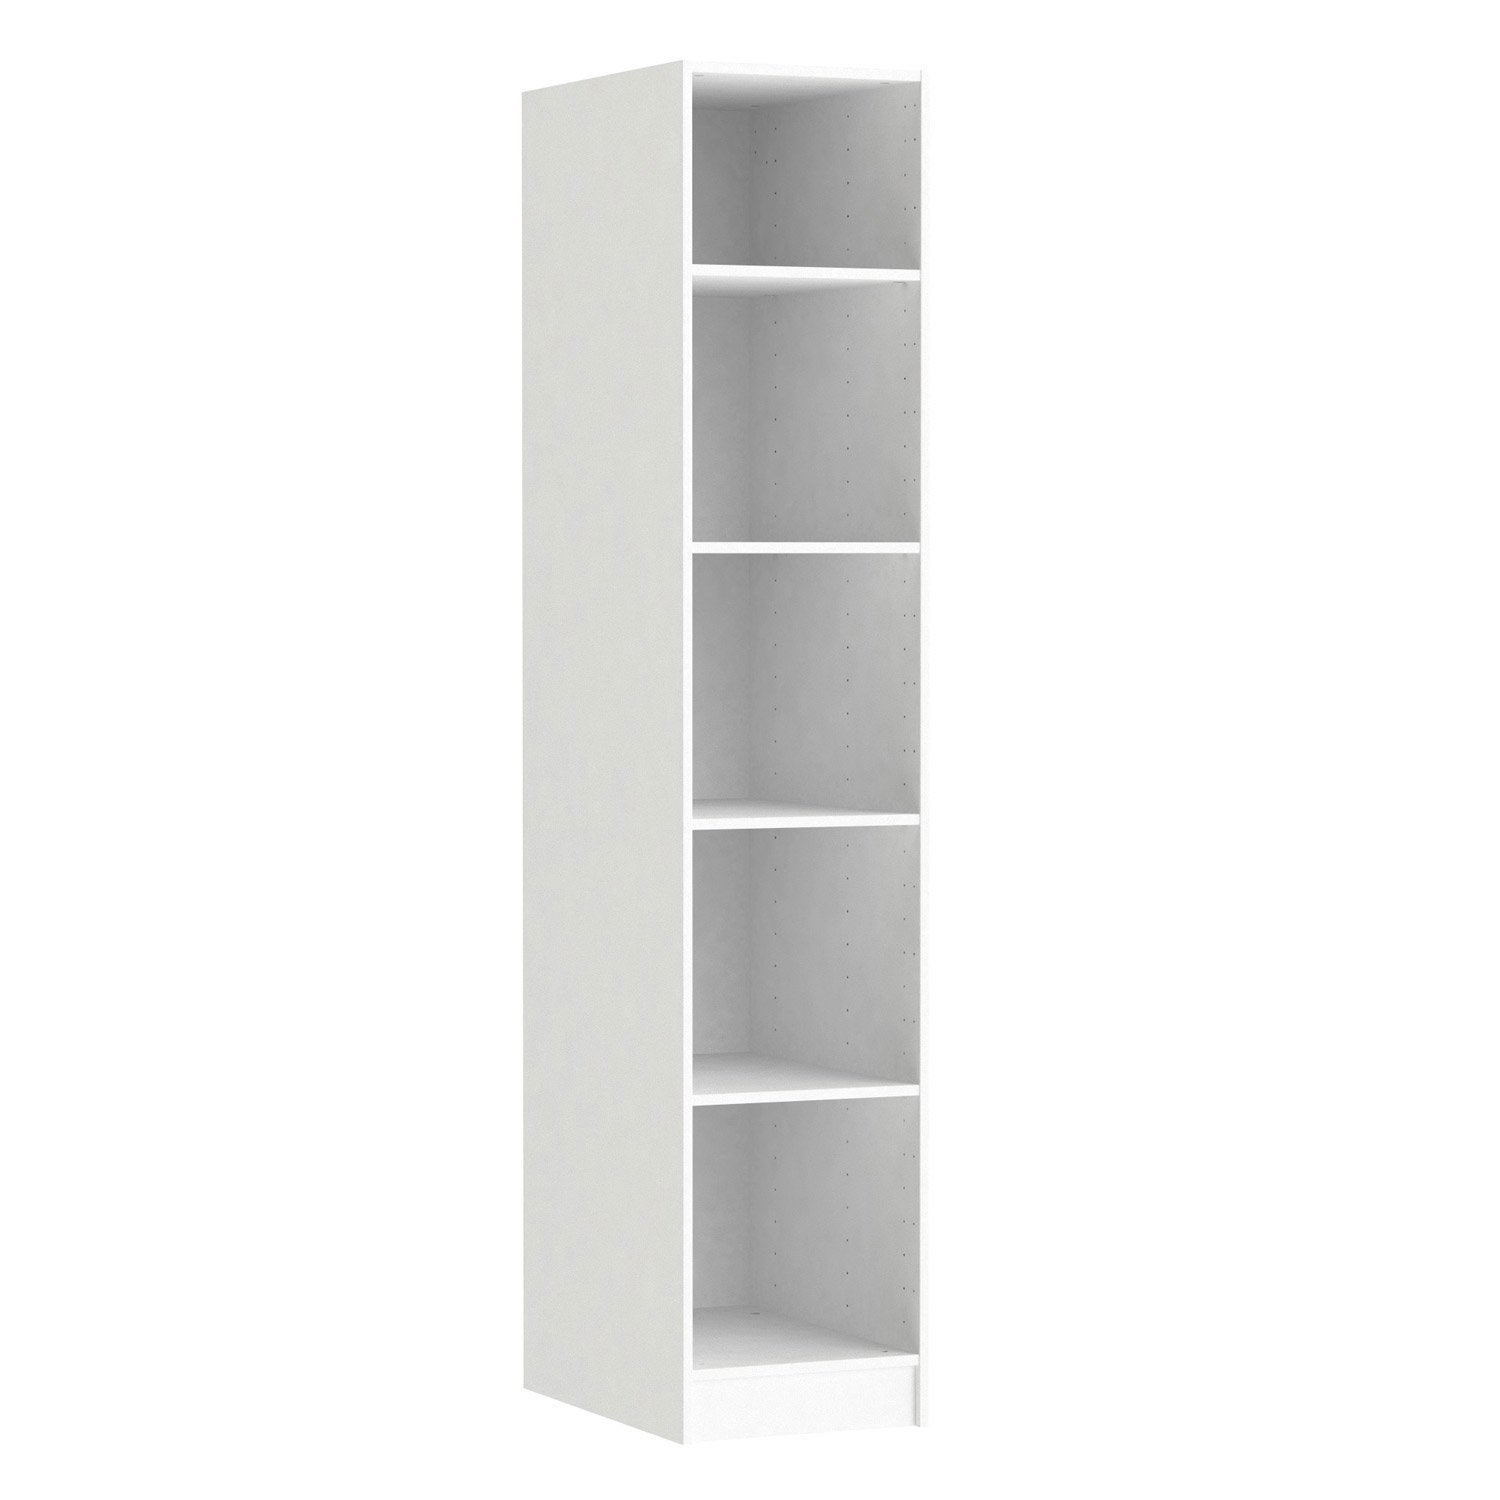 Caisson spaceo home 200 x 40 x 60 cm blanc leroy merlin for Meuble cuisine 50 x 60